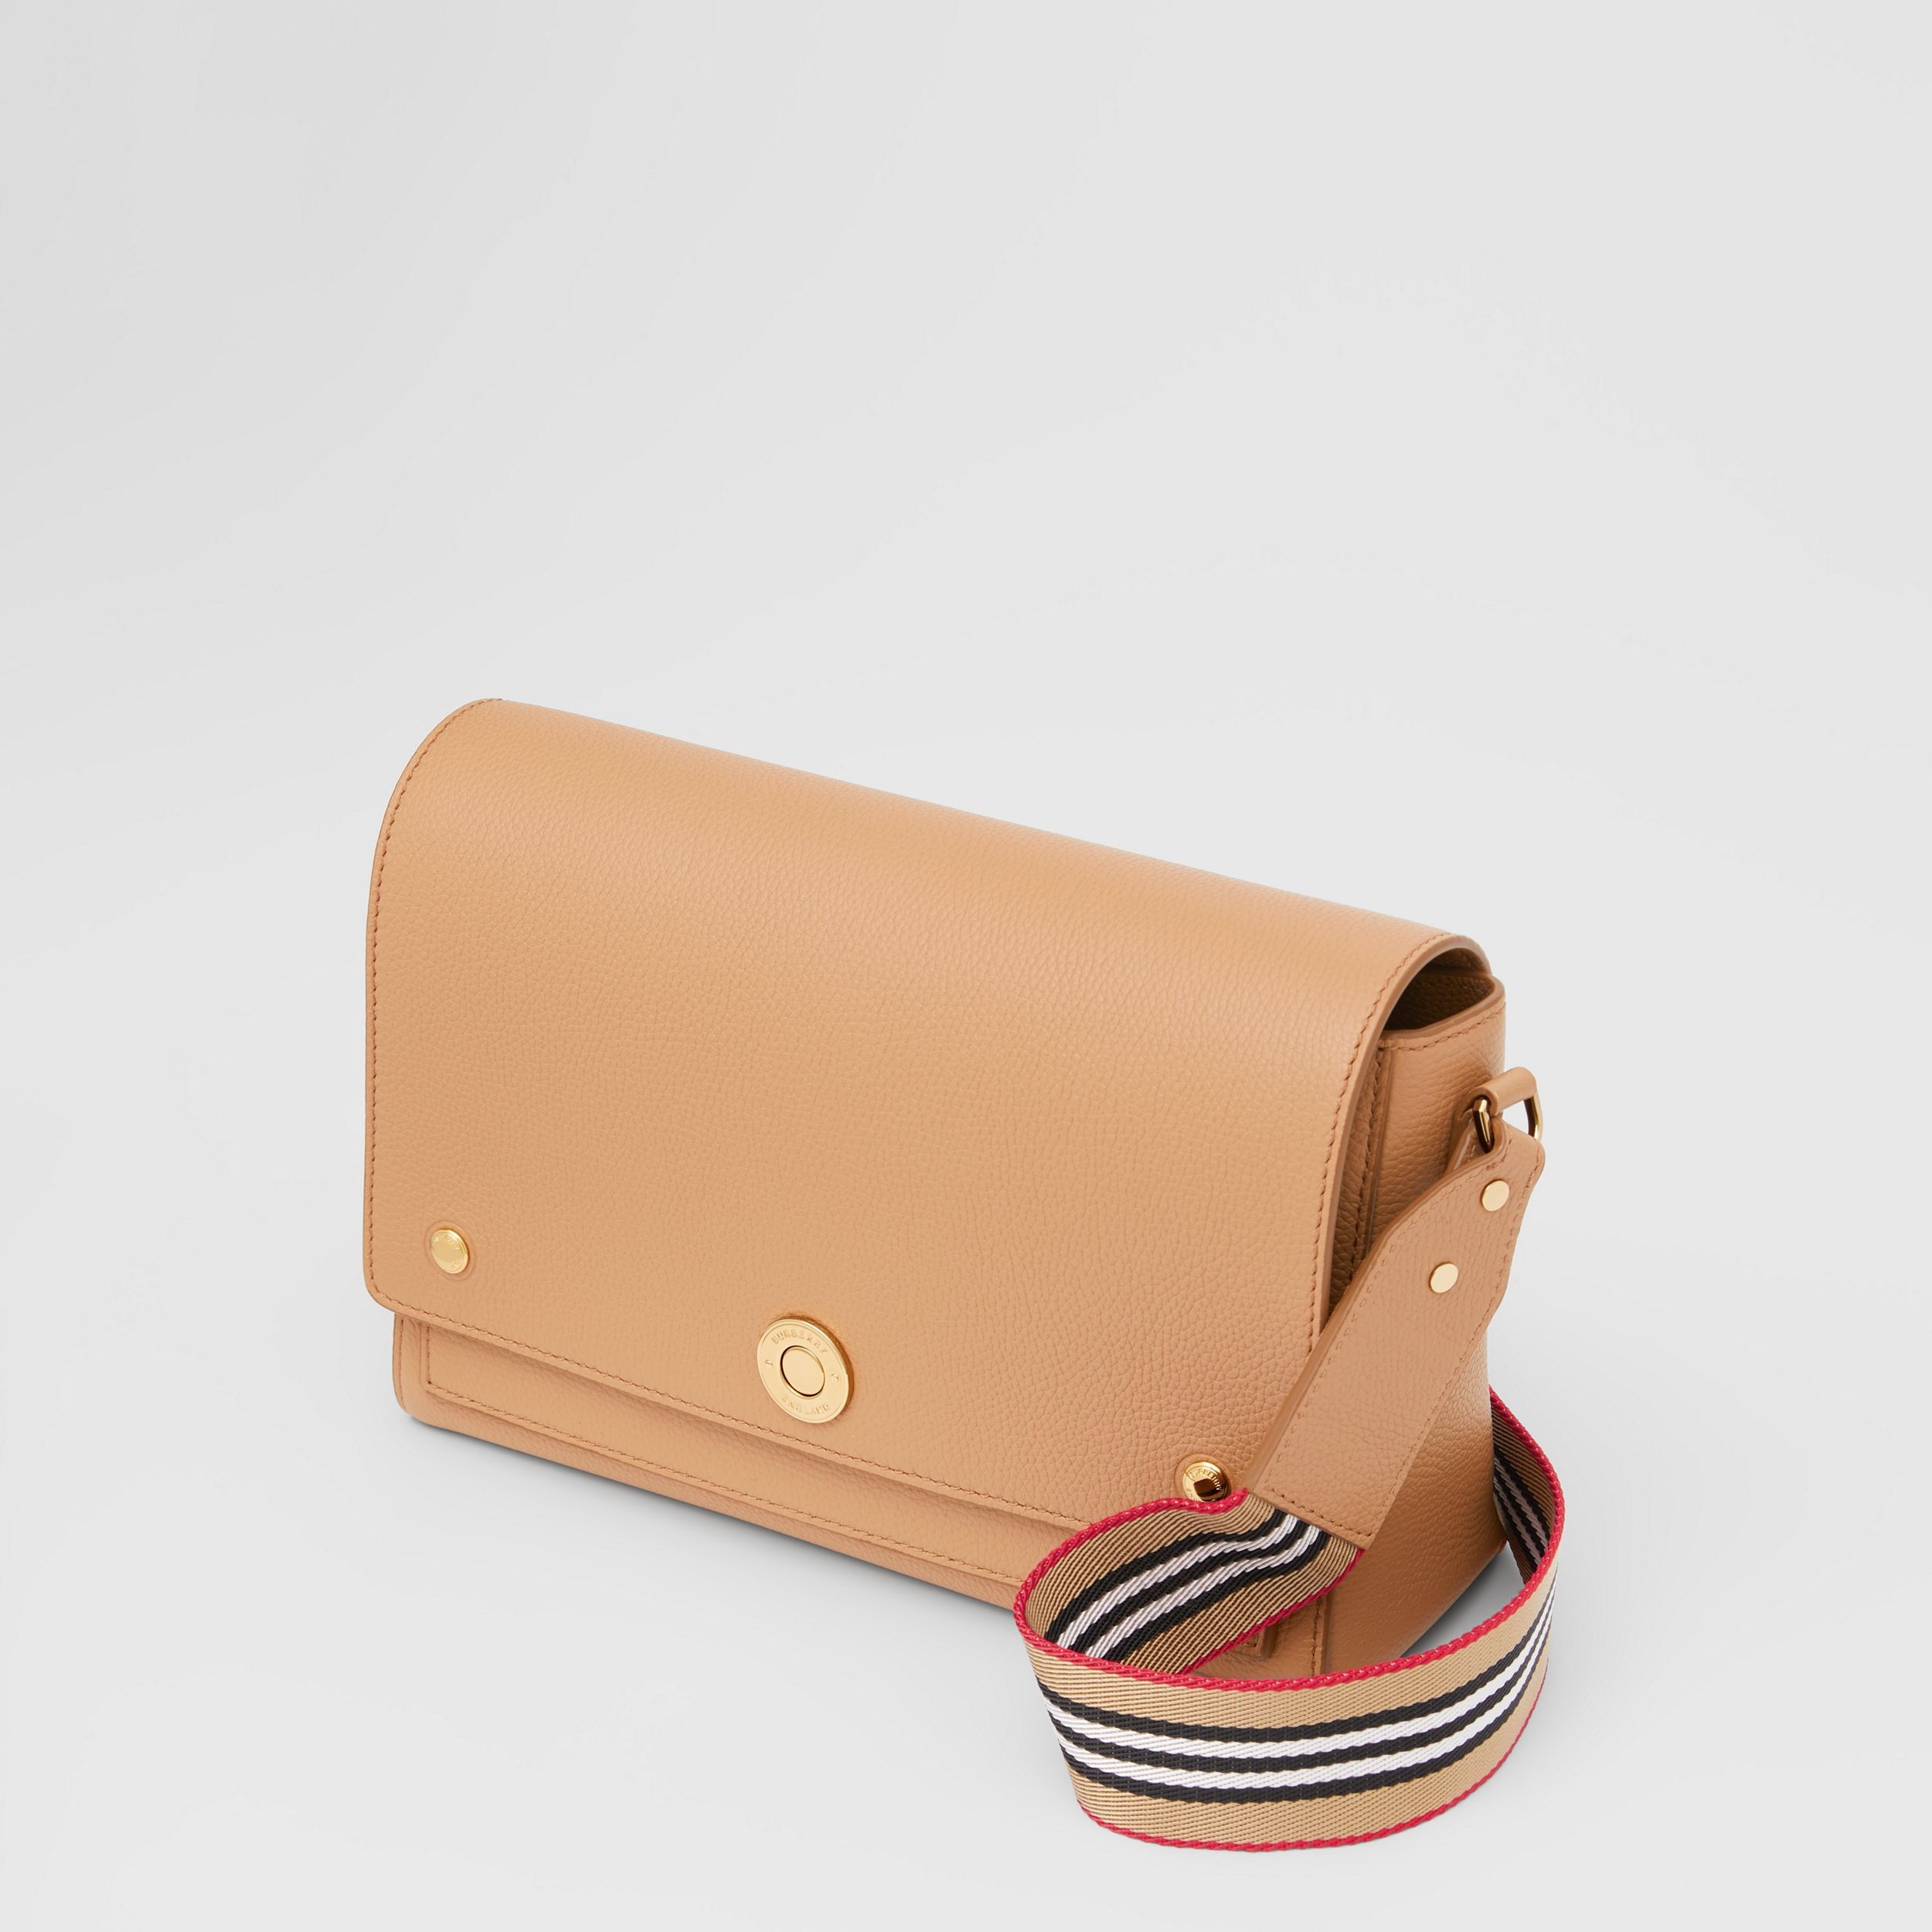 Grainy Leather Note Crossbody Bag in Camel - Women | Burberry - 4